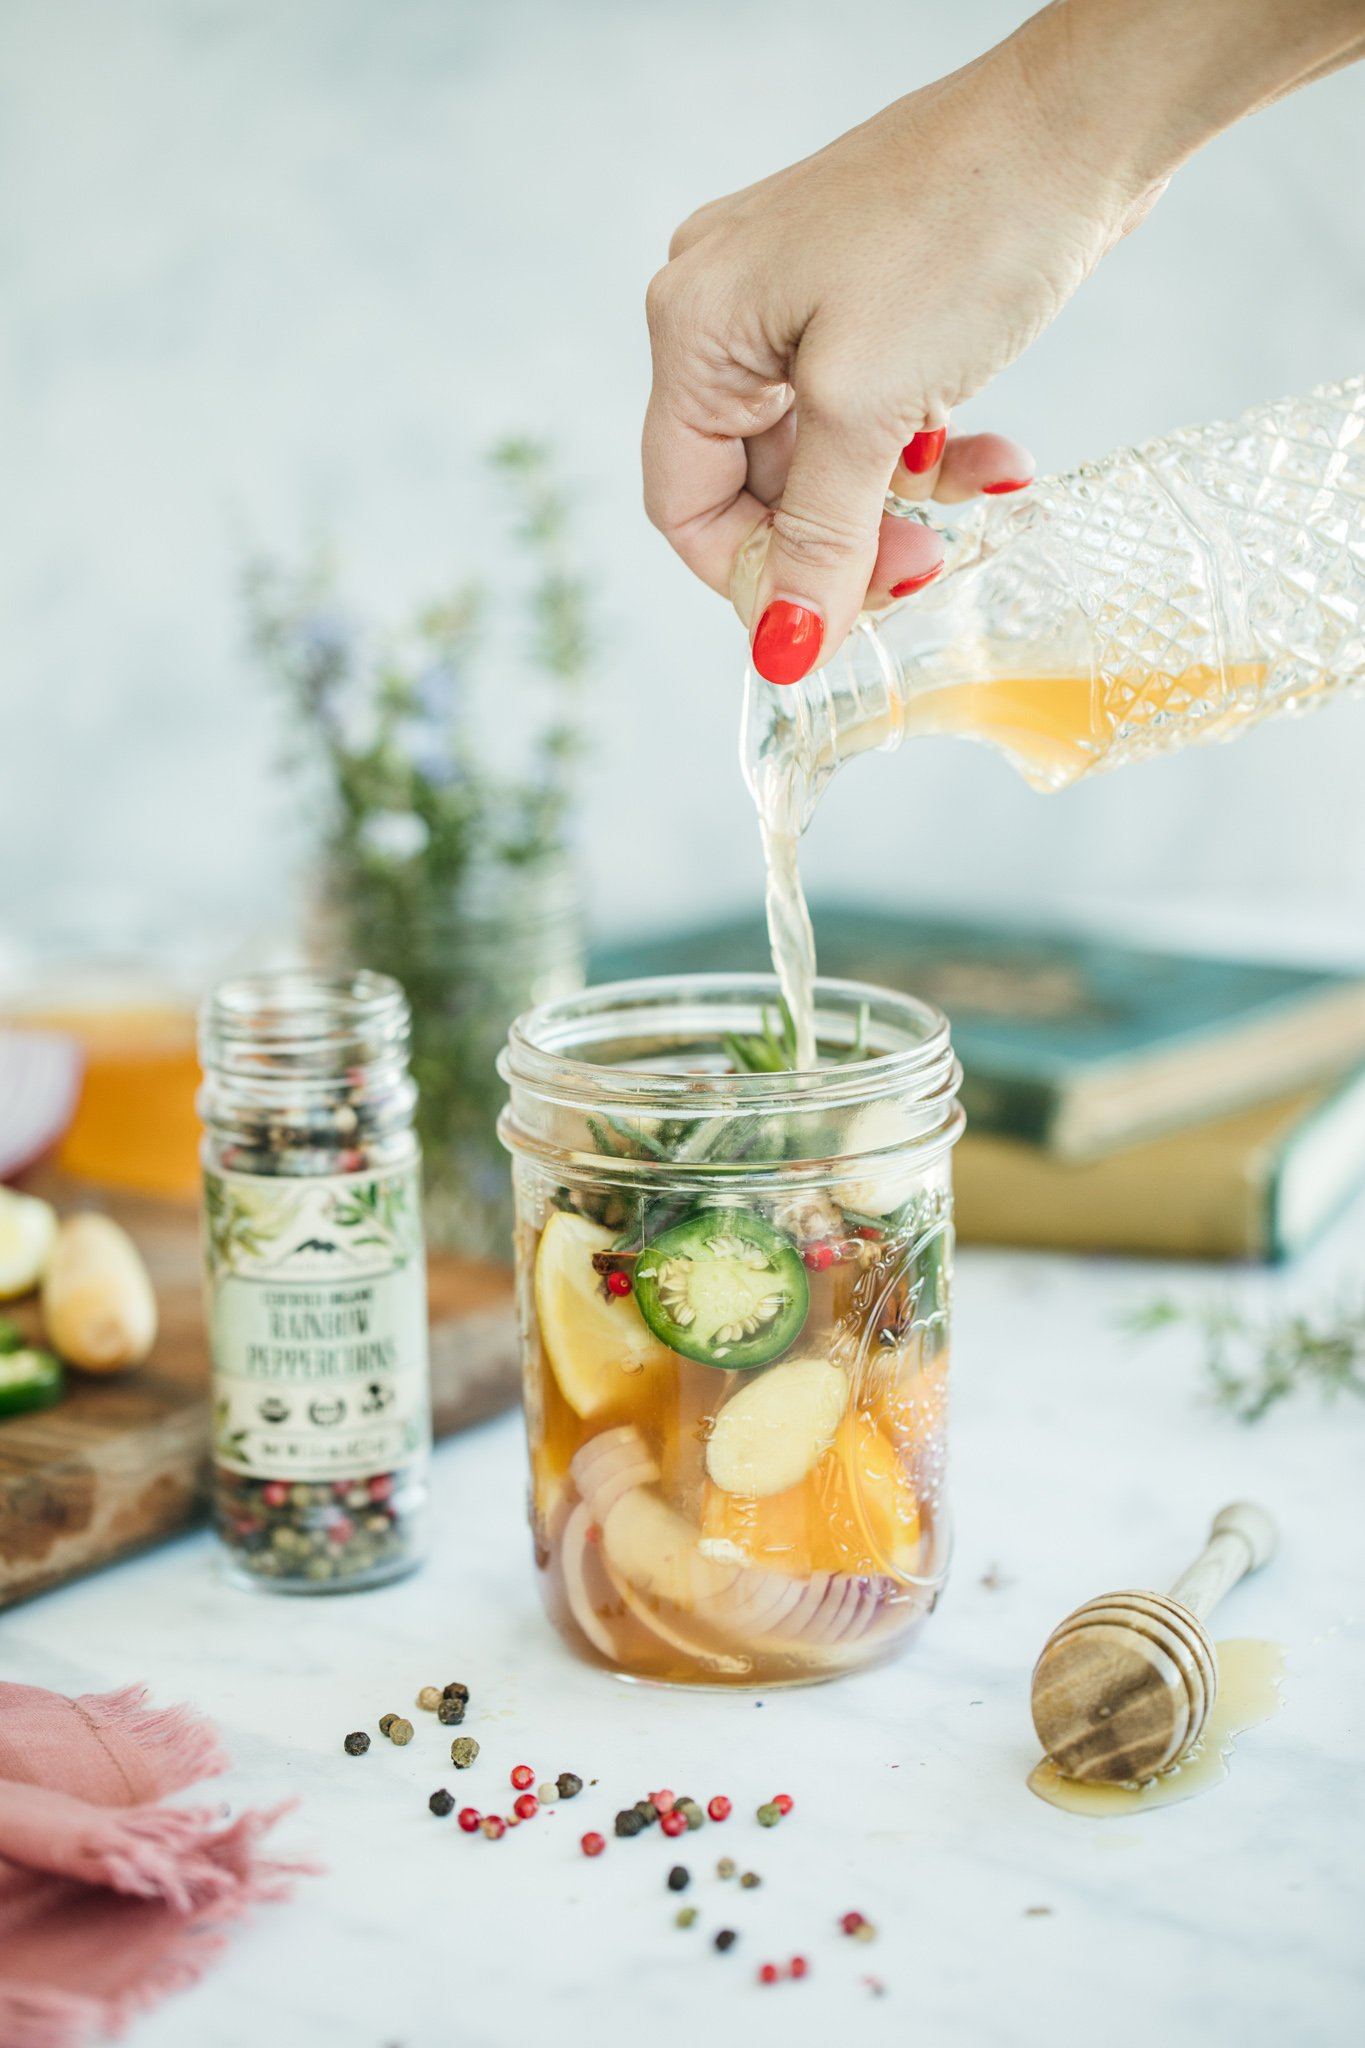 fire cider herbal remedy with mason jar and herbs